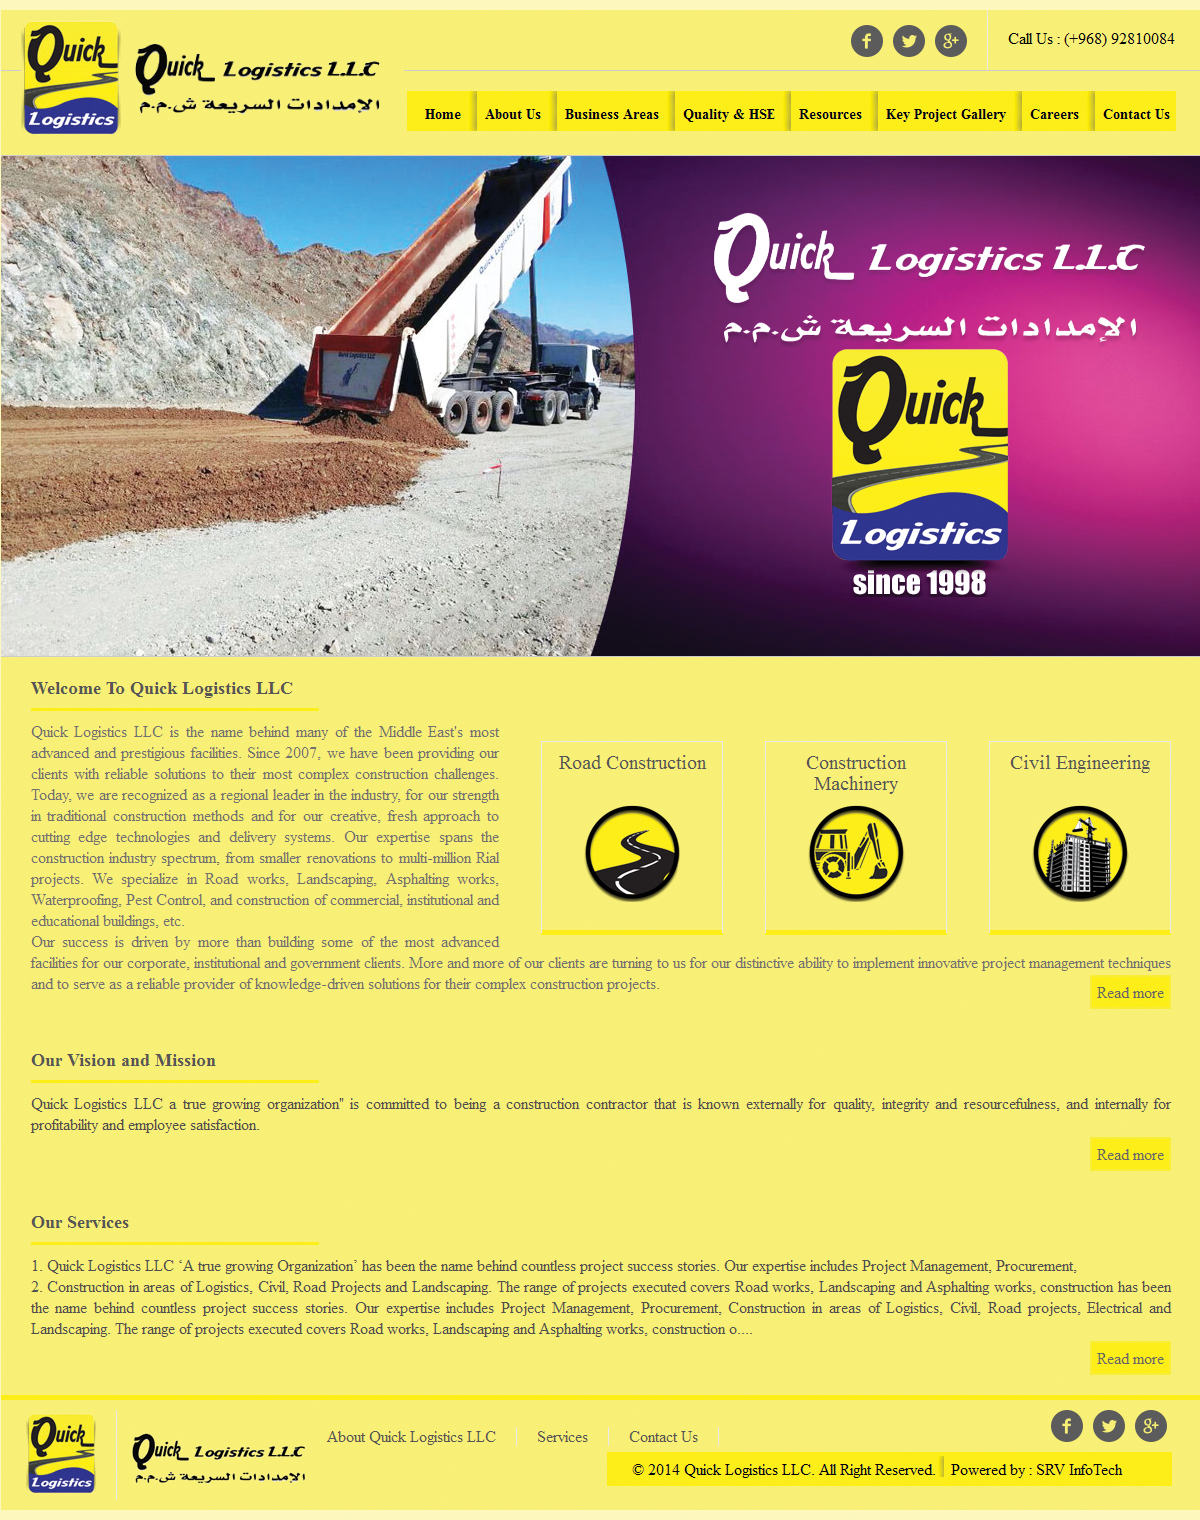 Quicklogisticsllc - SRV InfoTech Project